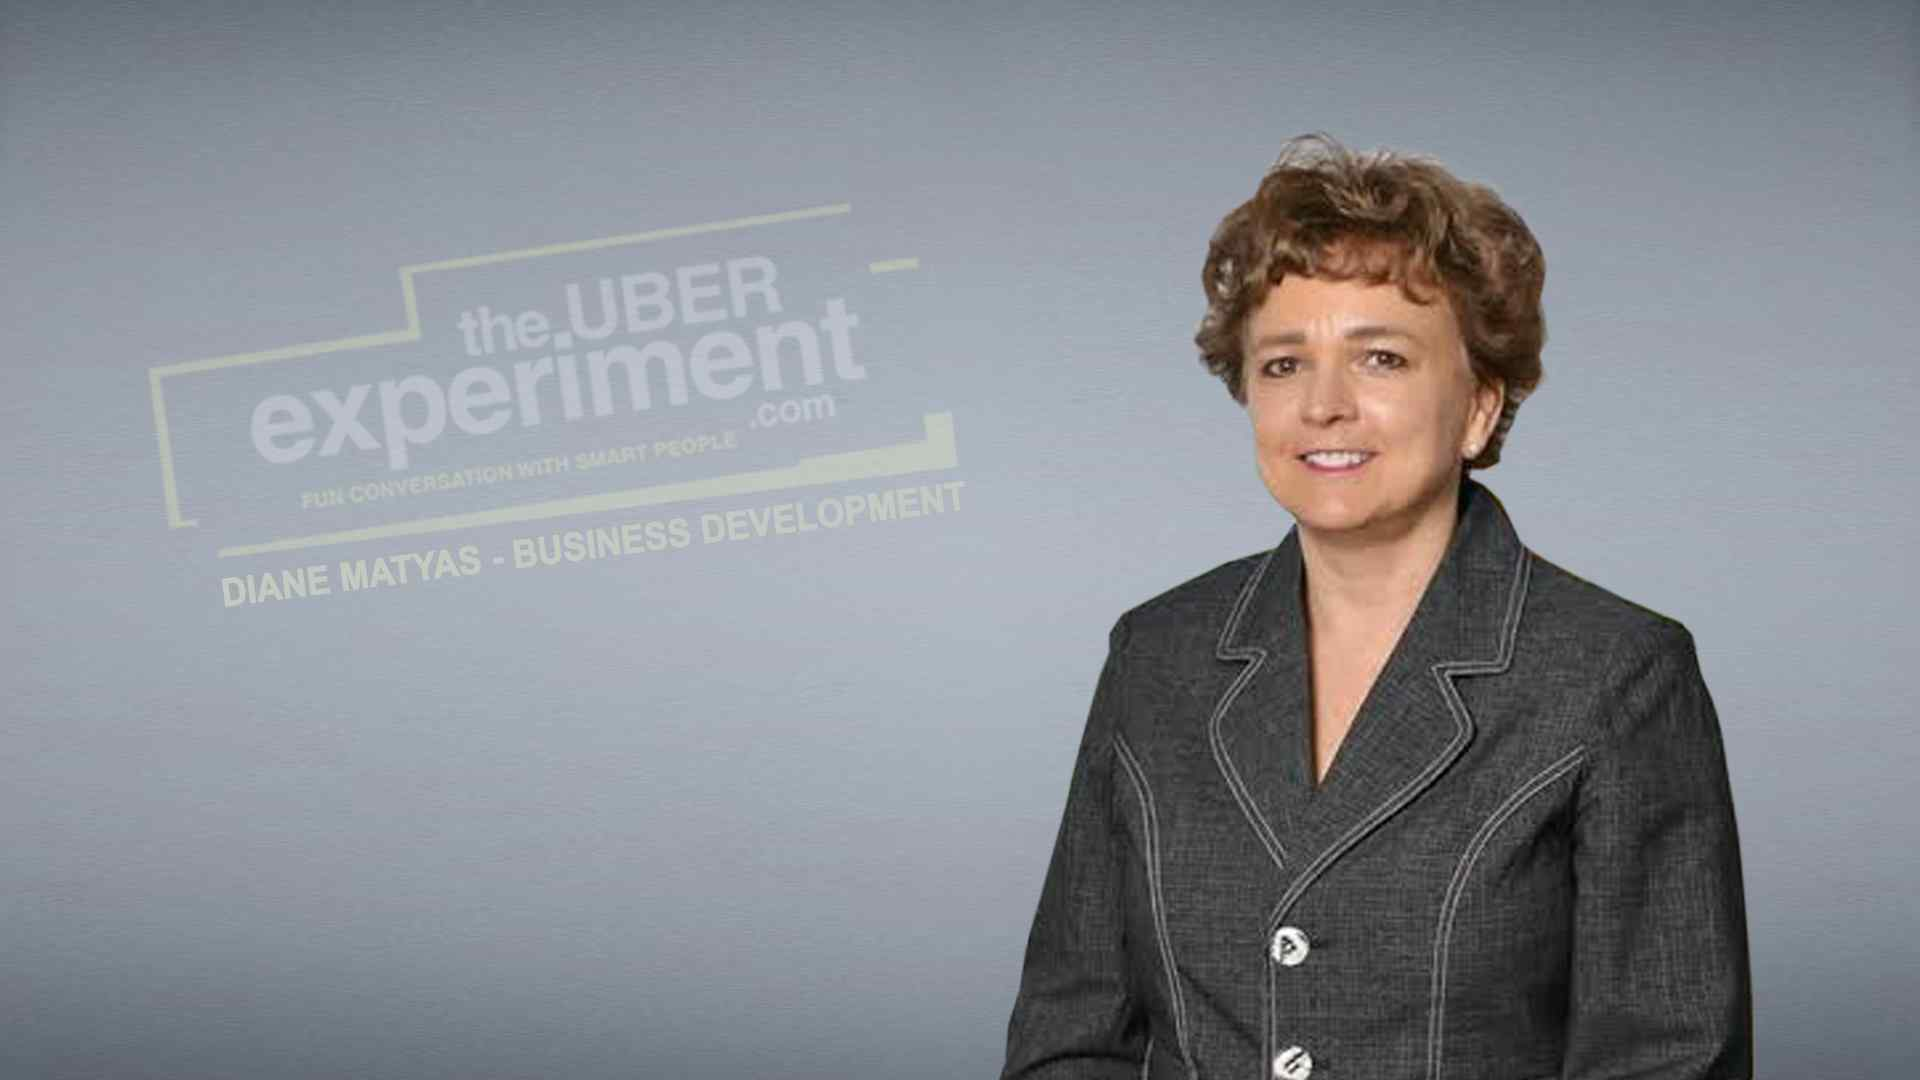 Diane Matyas - The Uber Experiment Reality Show Rep, Business Development